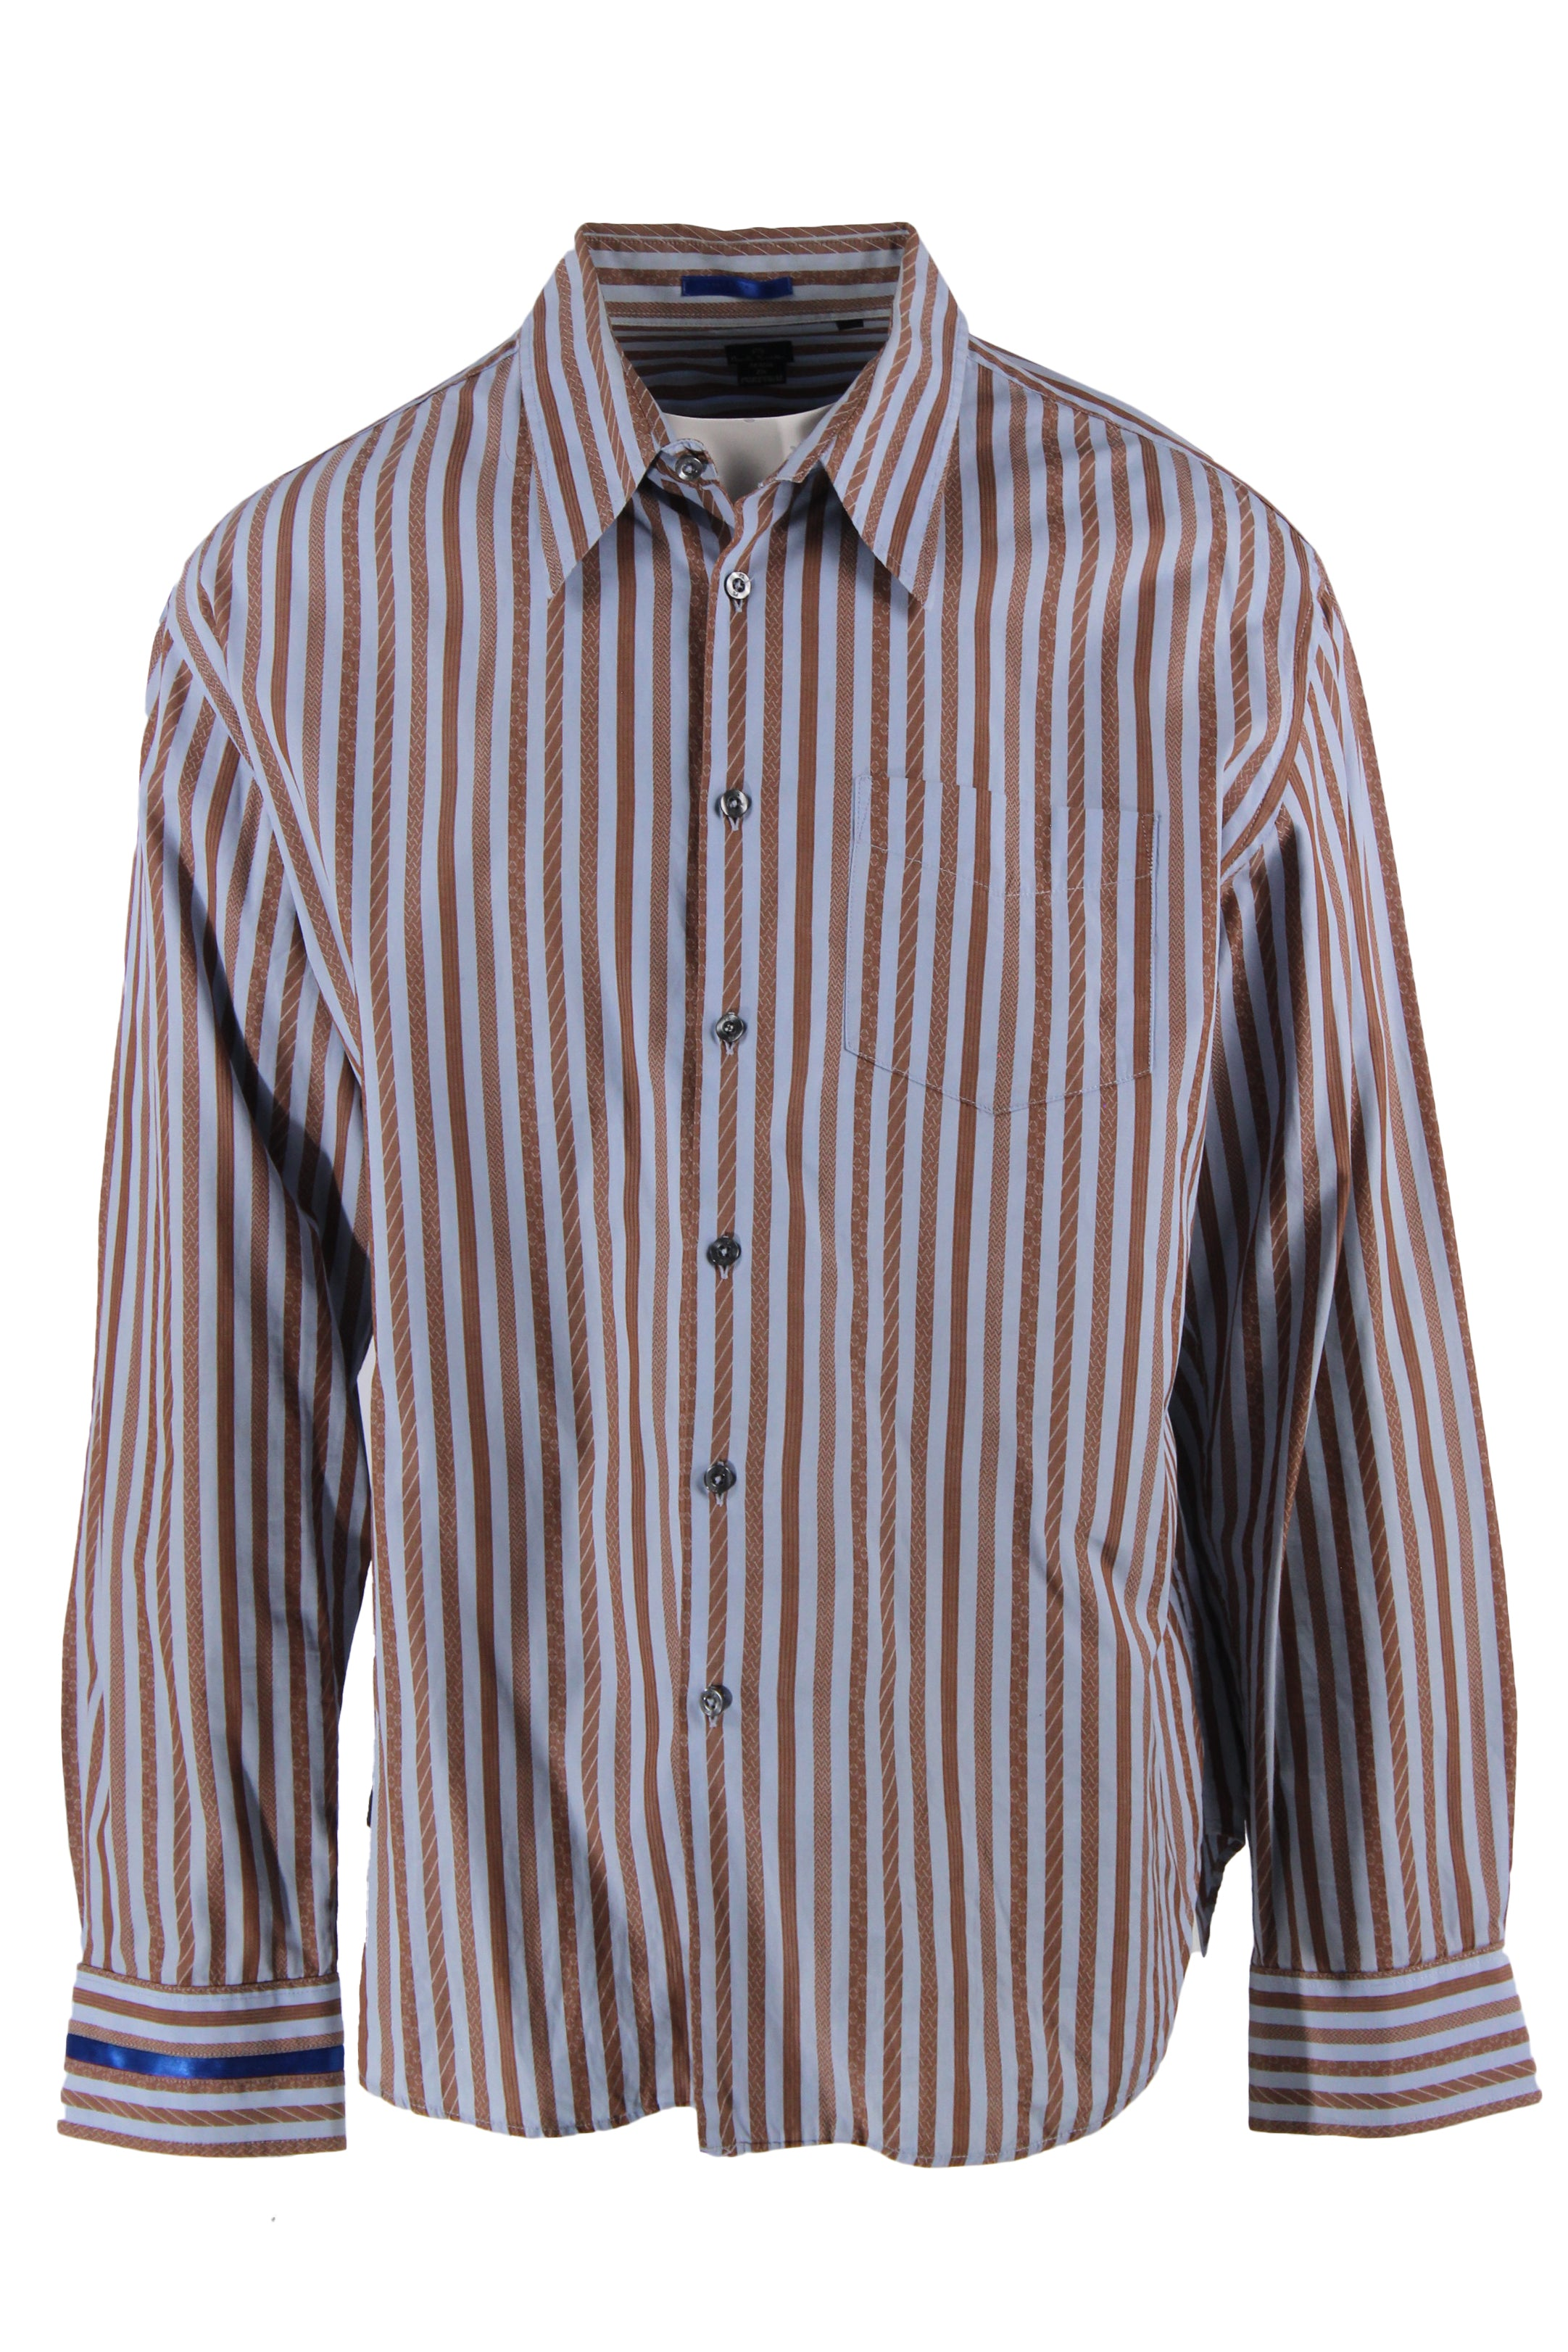 paul smith light blue/brown vertical striped long sleeve button up shirt. features pockets at left breast with royal blue ribbon accent stripe at right cuff.